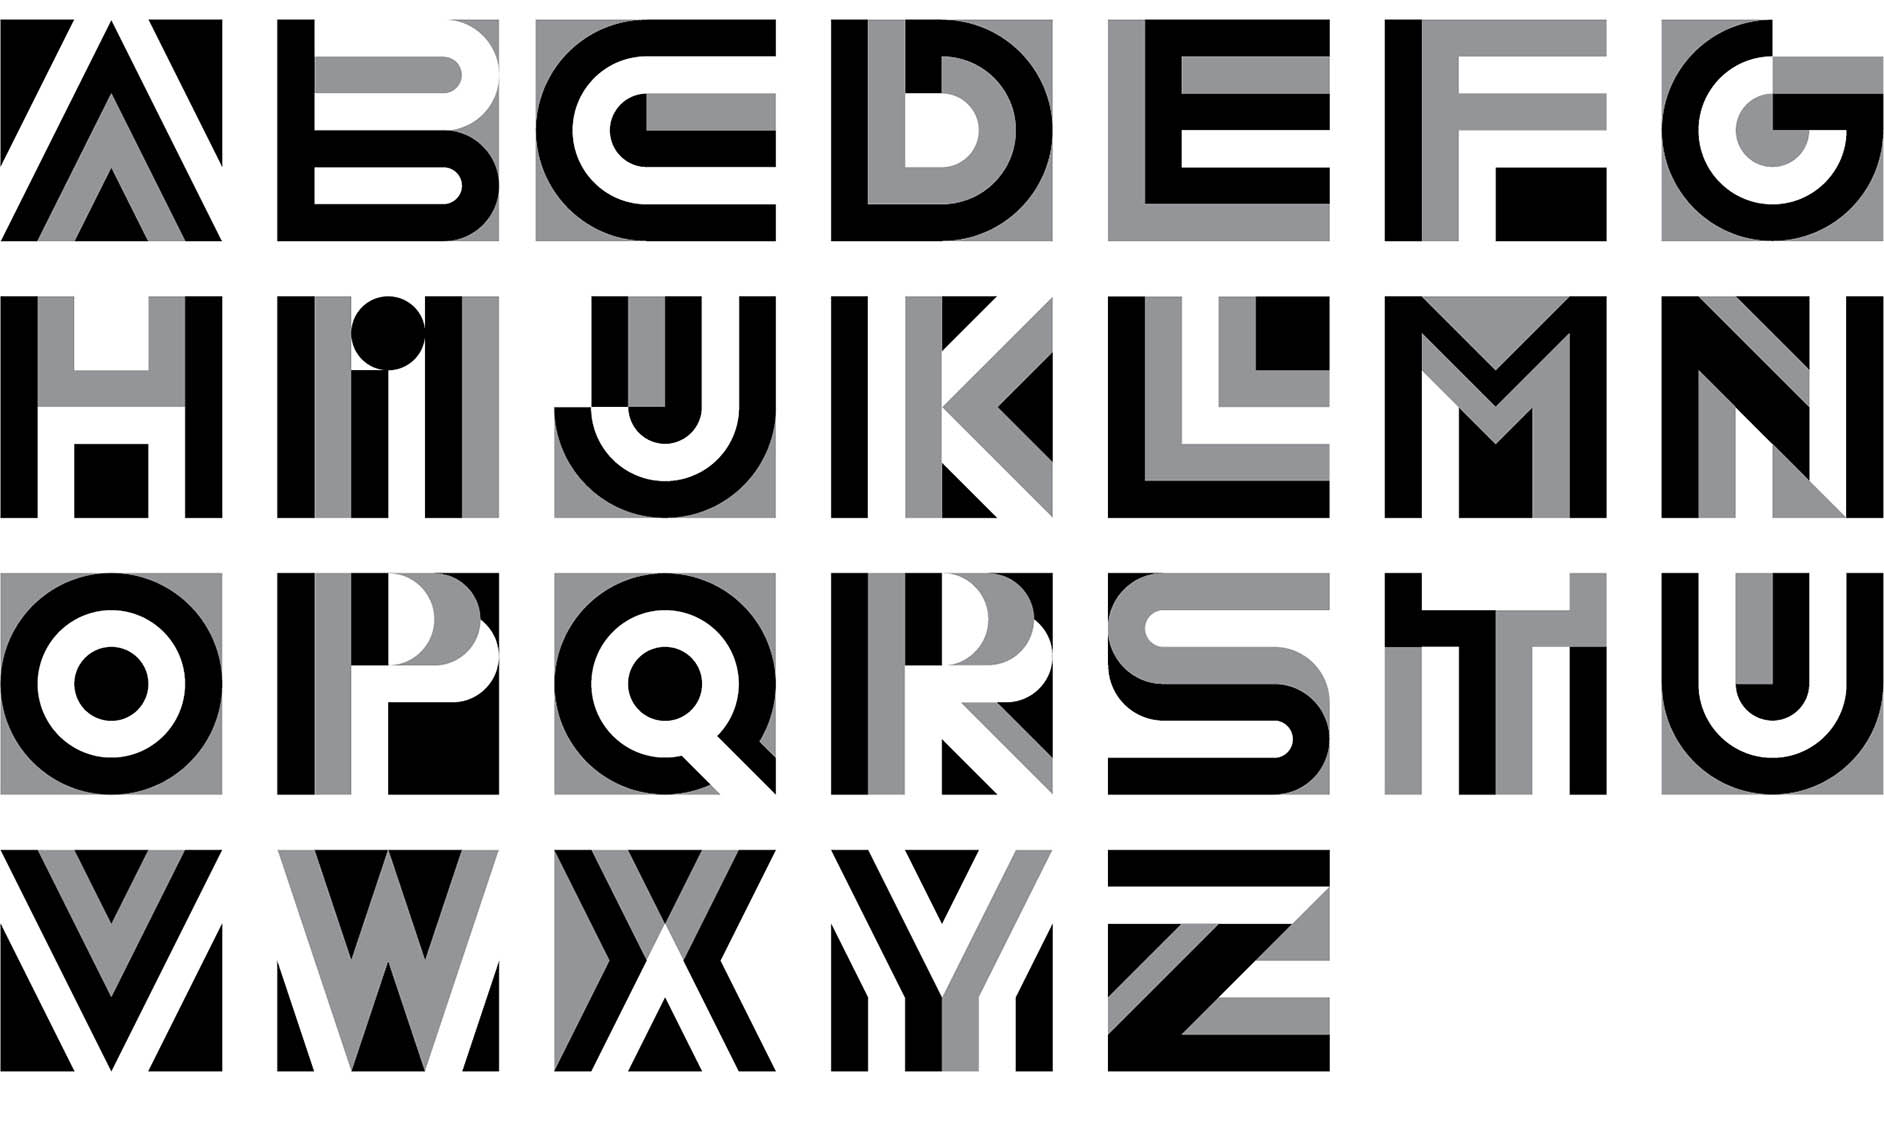 Experimental typeface design Letterforms